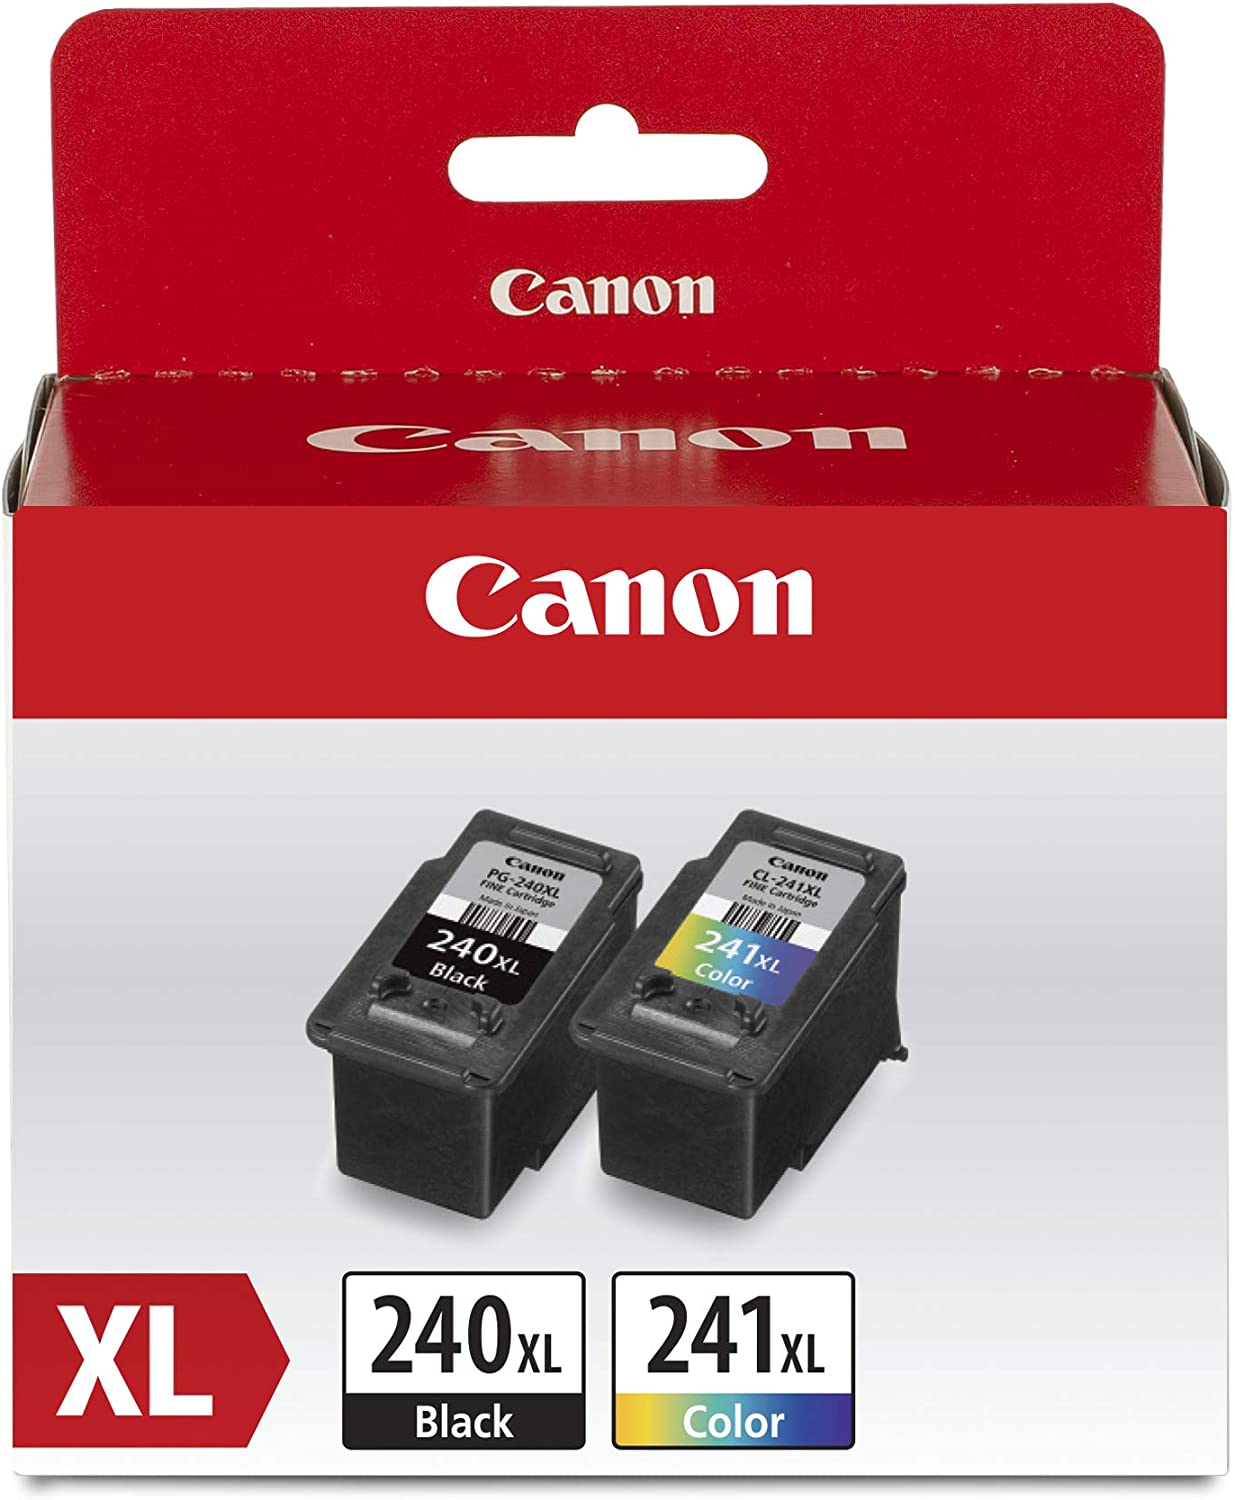 Canon PG-240 XL / CL-241 XL Amazon Pack